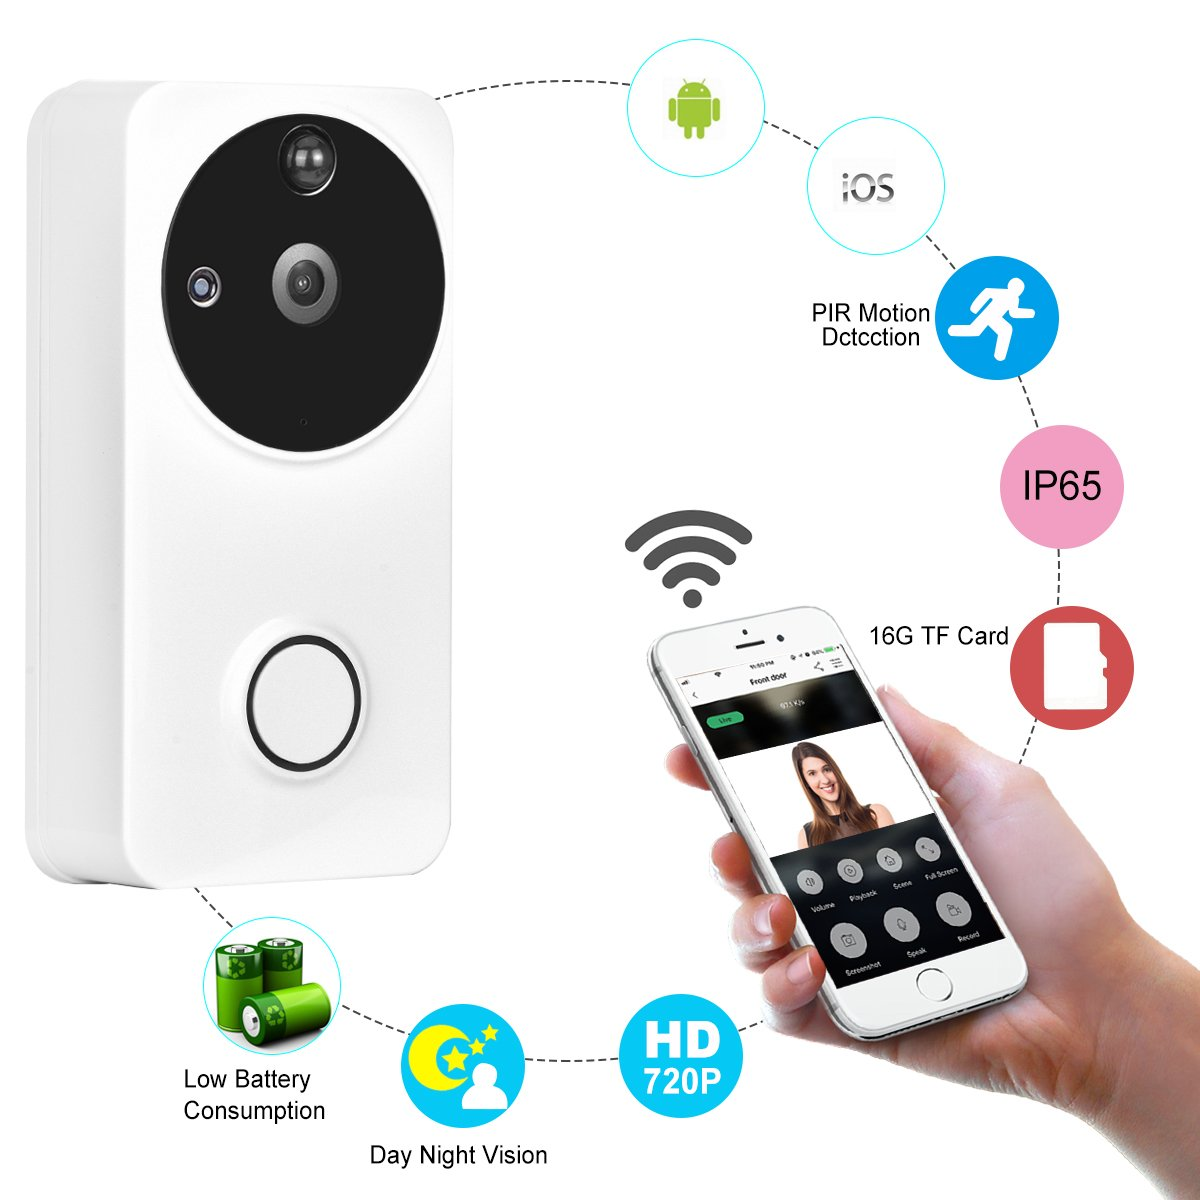 Akpote Video Doorbell,Smart WIFI Camera 720P HD 166ﹾ Lens with 6 LED Night Vision Wireless Visual Doorbell IP65 Real-Time Two-way Audio PIR Motion Detection for IOS and Android with 16G TF Card(White)